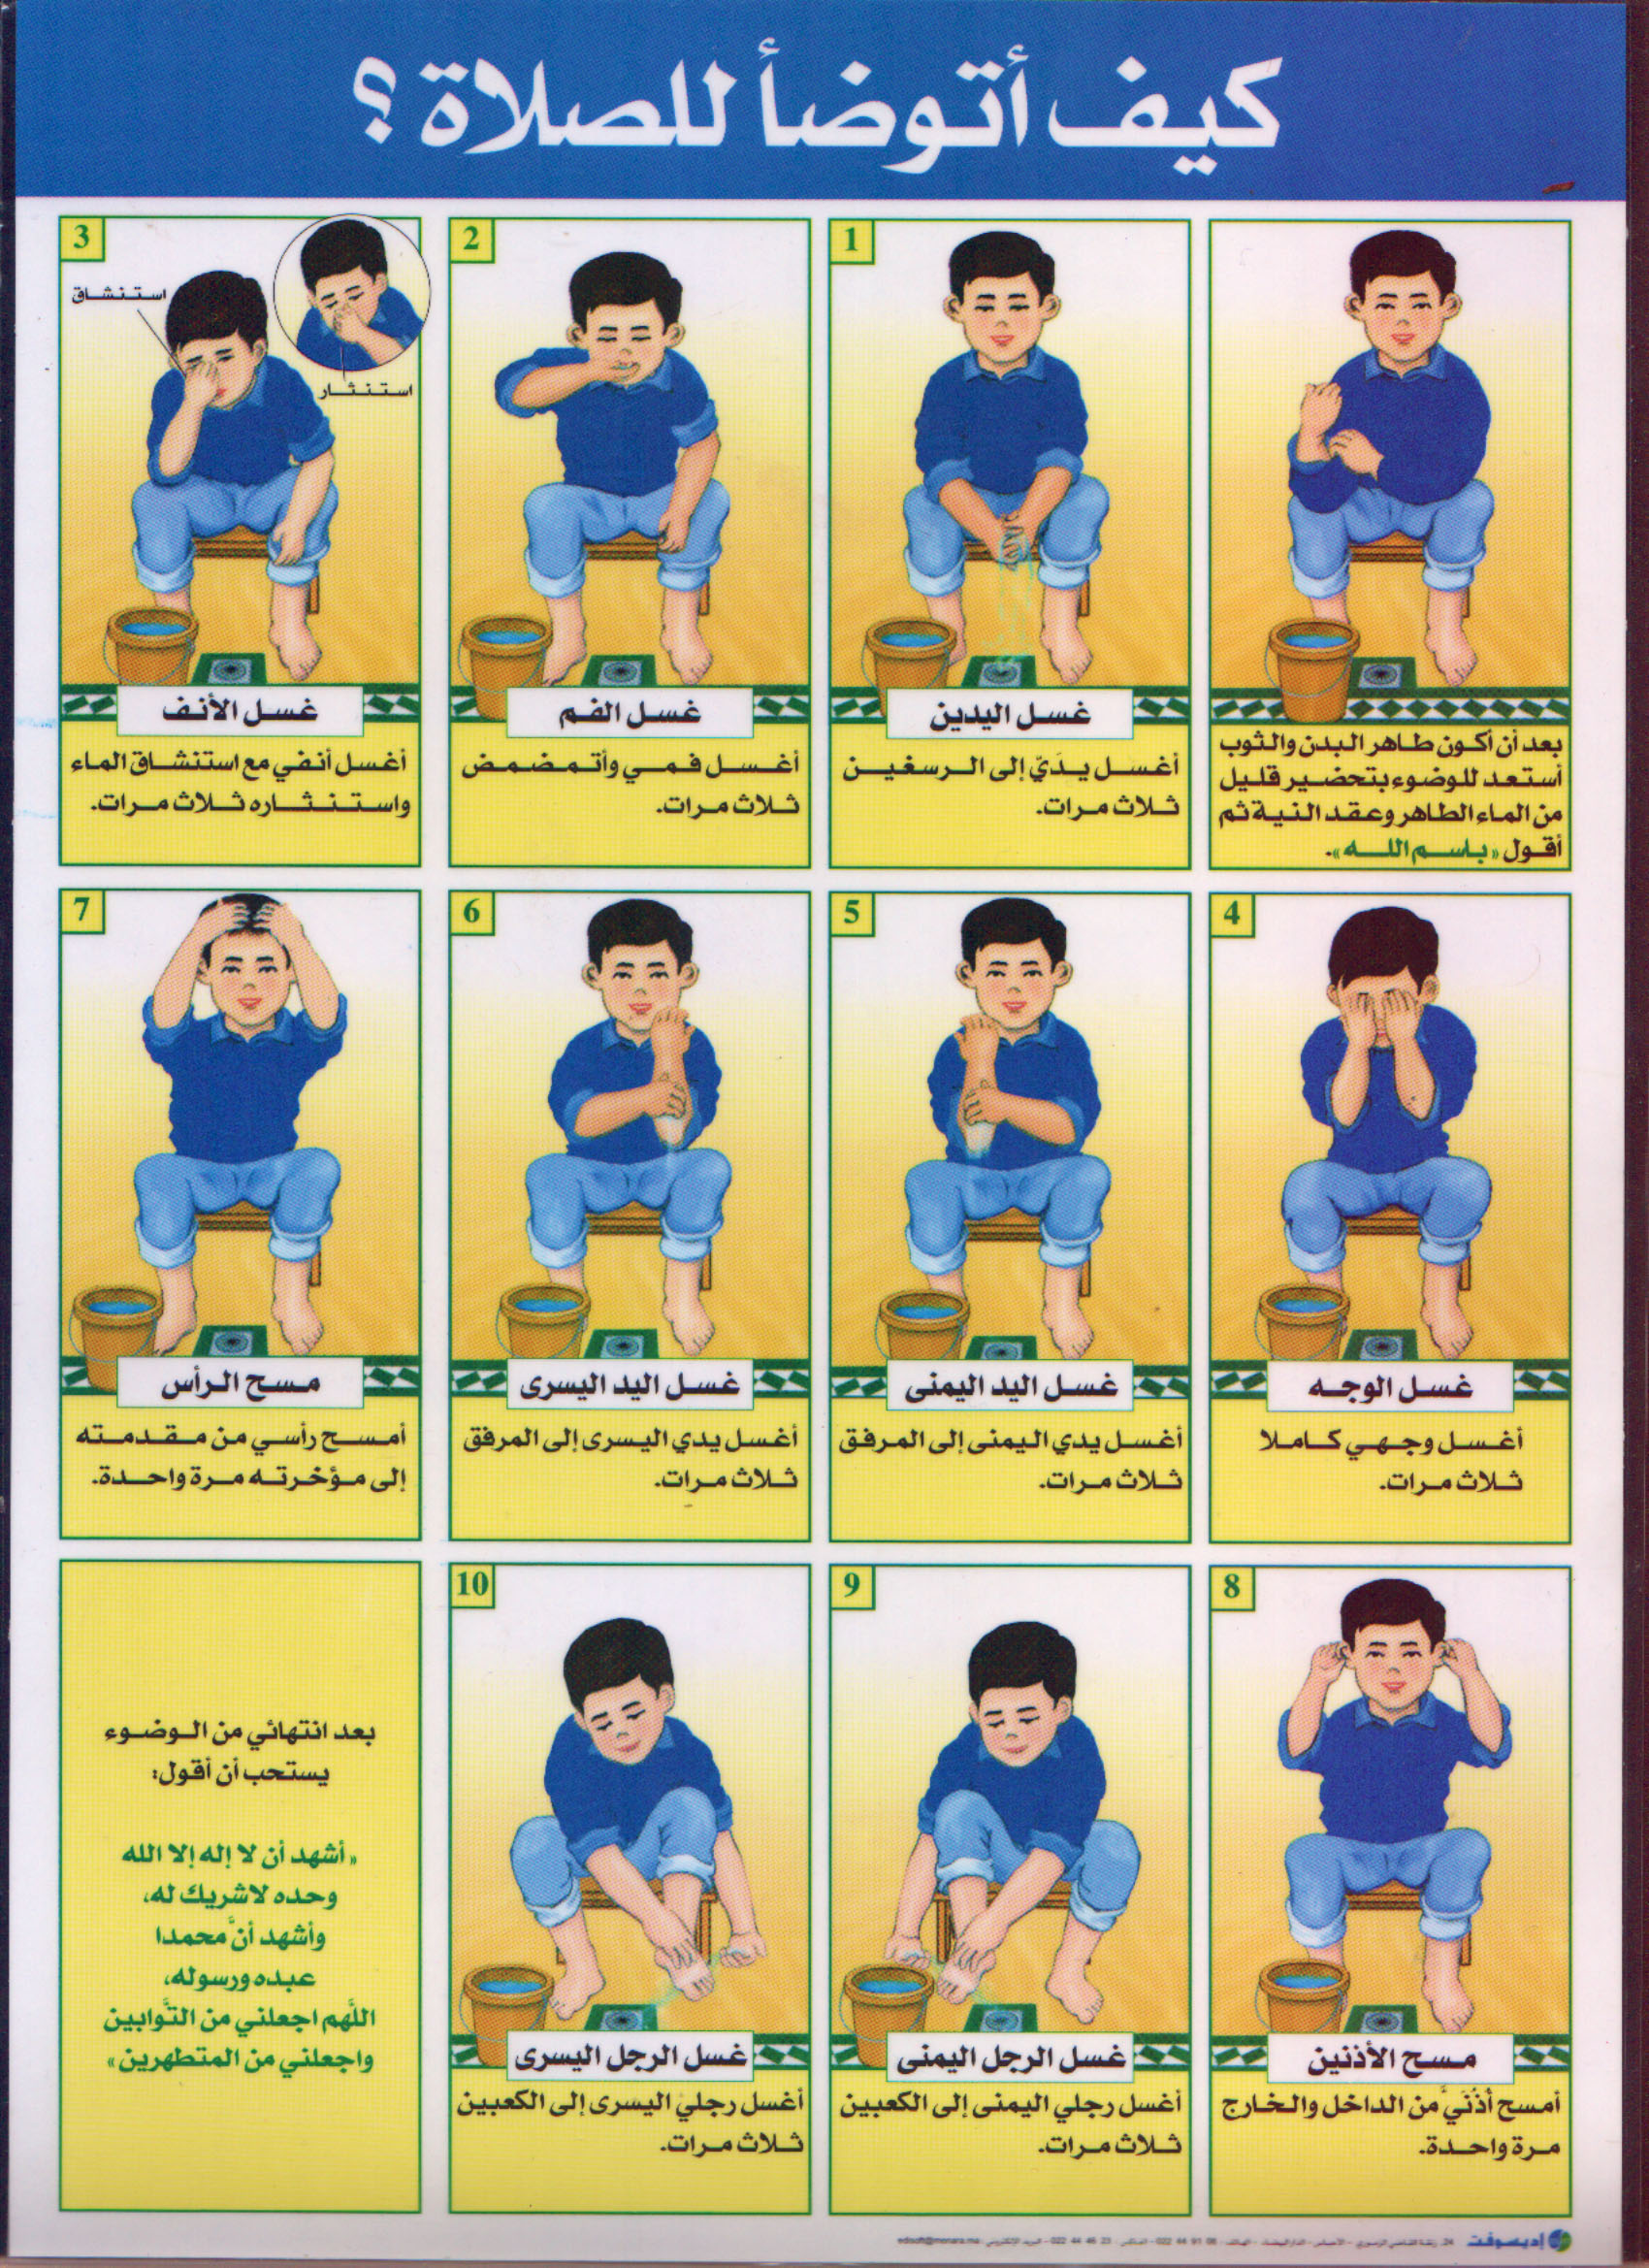 How To Perform Wuduu For Prayer A Step By Step Chart For